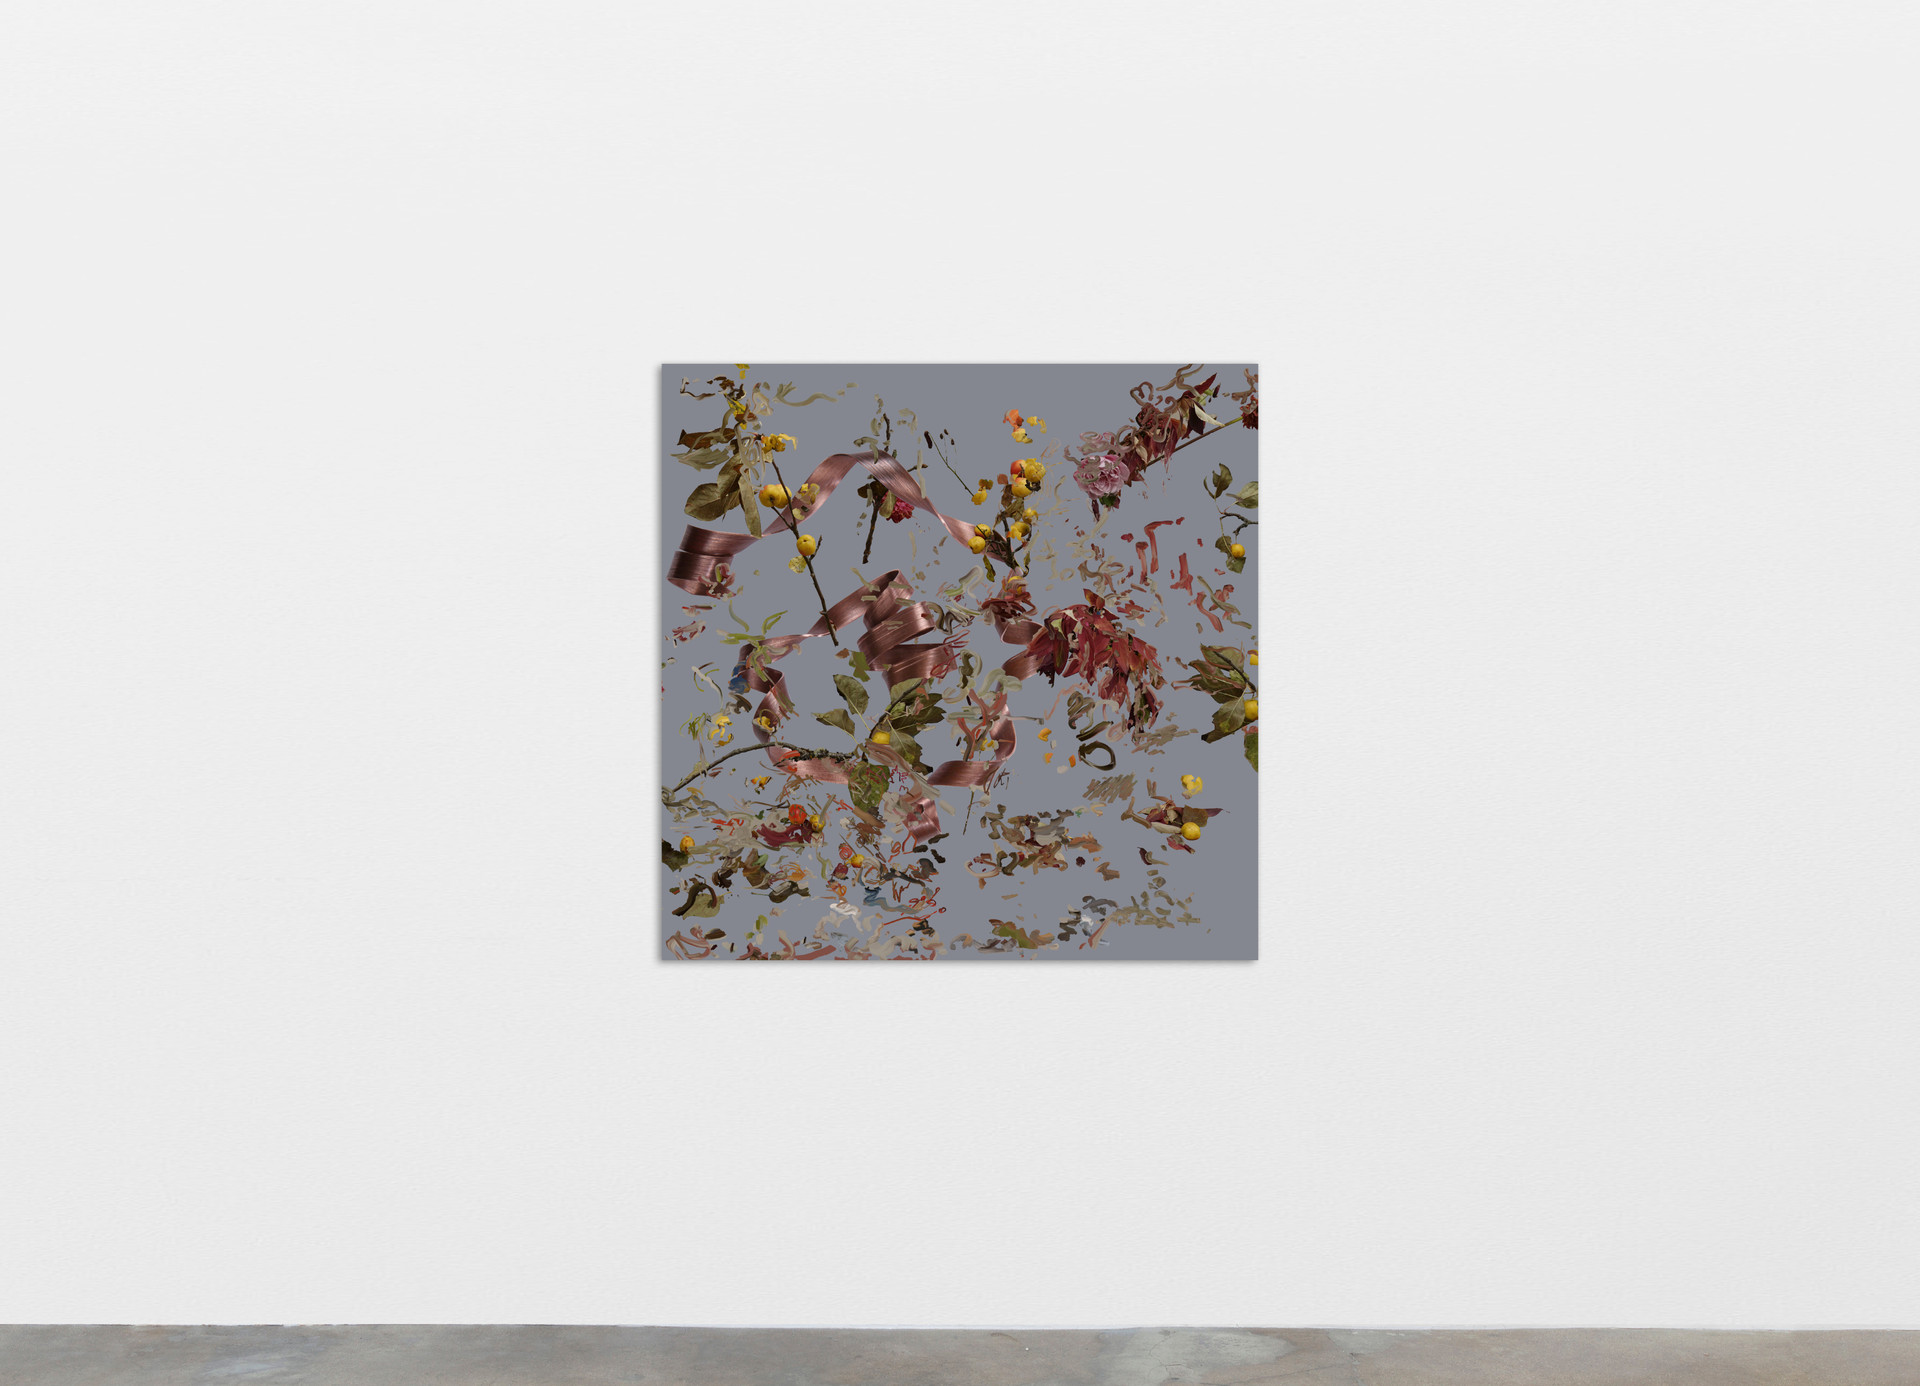 """Petra Cortright I rememe loving you_""""IMAGE/SQL"""" 2000 Images of Erotica, 2020 Digital painting on anodized aluminum 83.82 x 83.82 cm 33 x 33 in"""